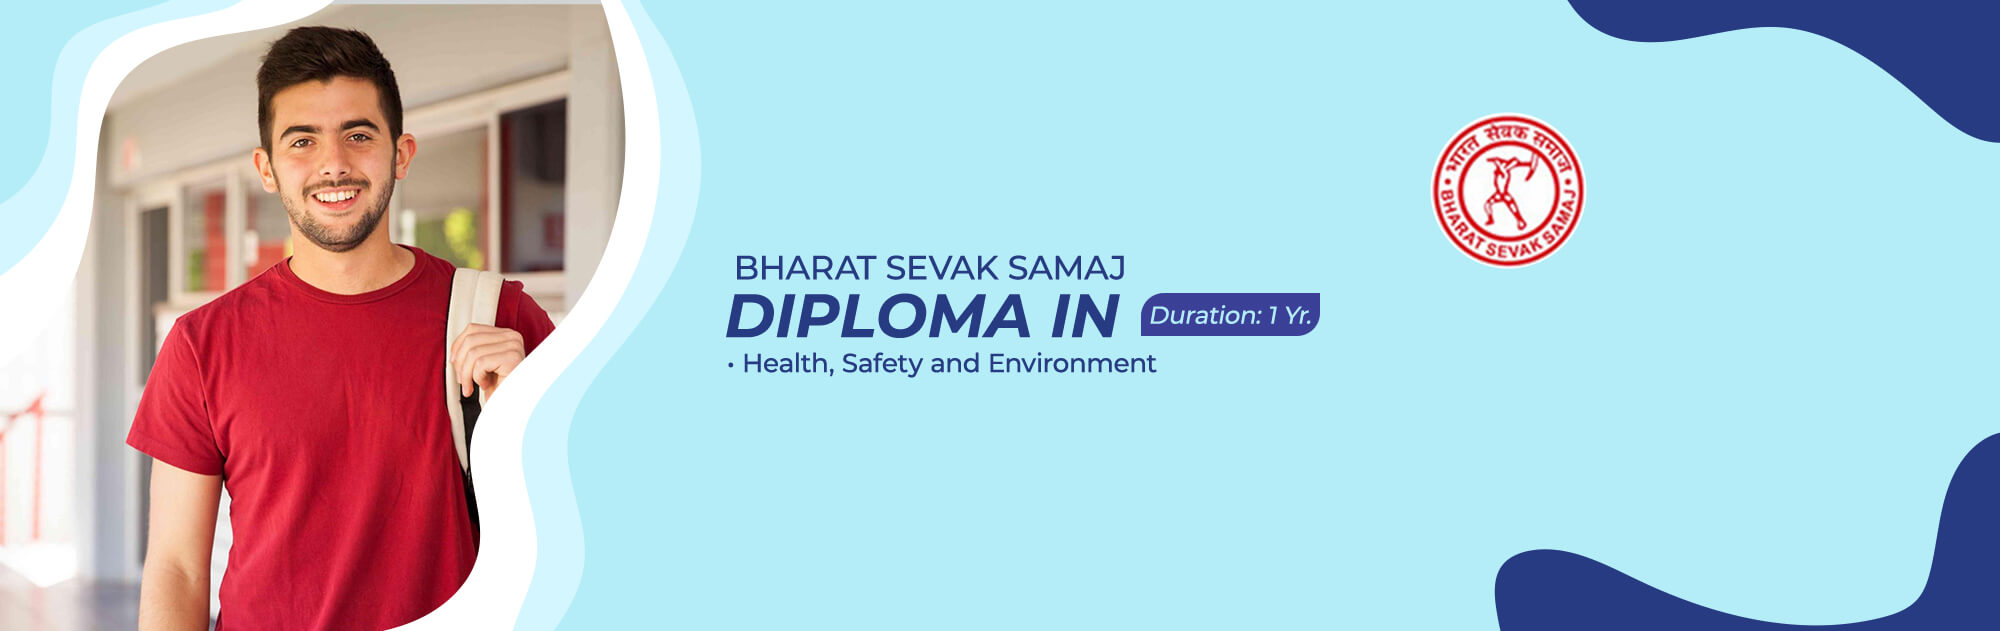 Admission for Bharat Sevak Samaj - Diploma in Health, Safety and Environment Courses